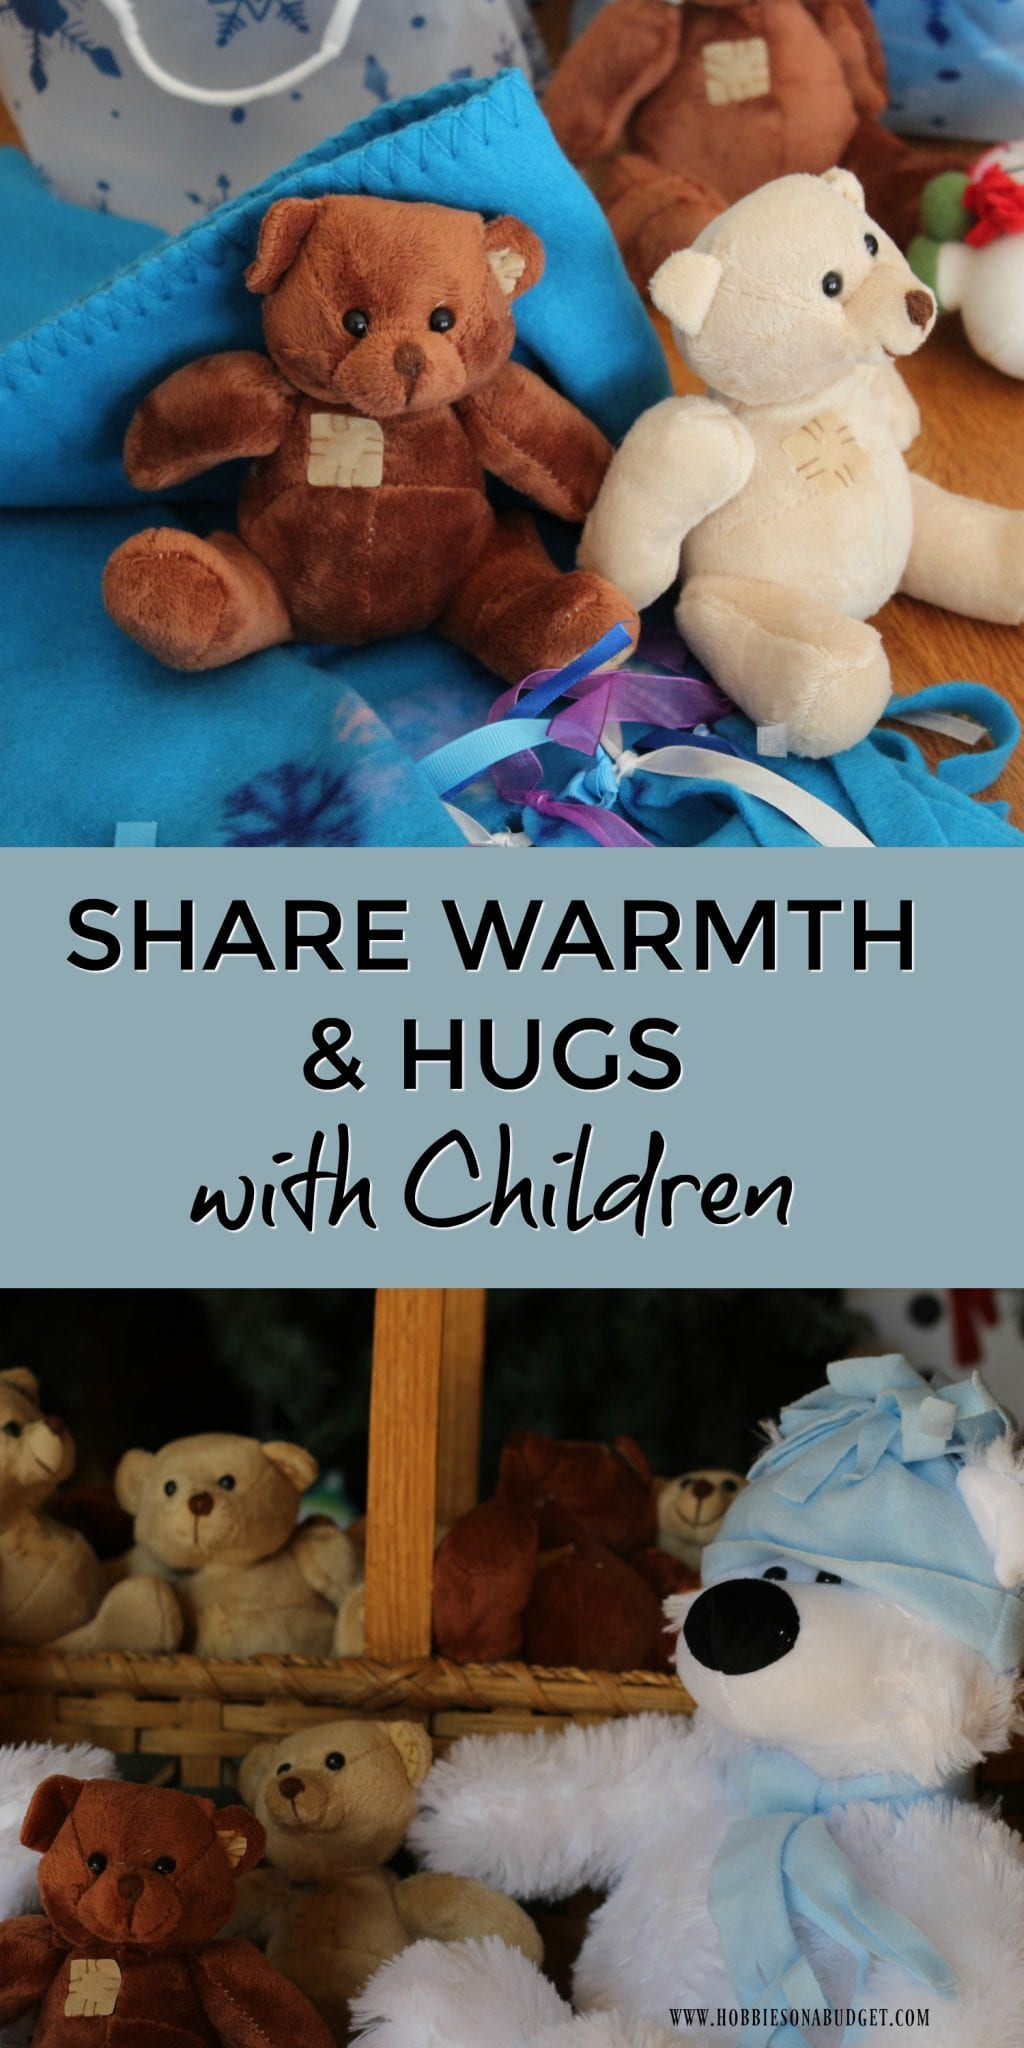 As the weather gets colder and the holiday decorations all go up around town and in our homes, it's time to think about spreading love and doing something special for the children in our communities who may not have warm homes and families. Here are some easy ideas to share warmth & hugs with children.